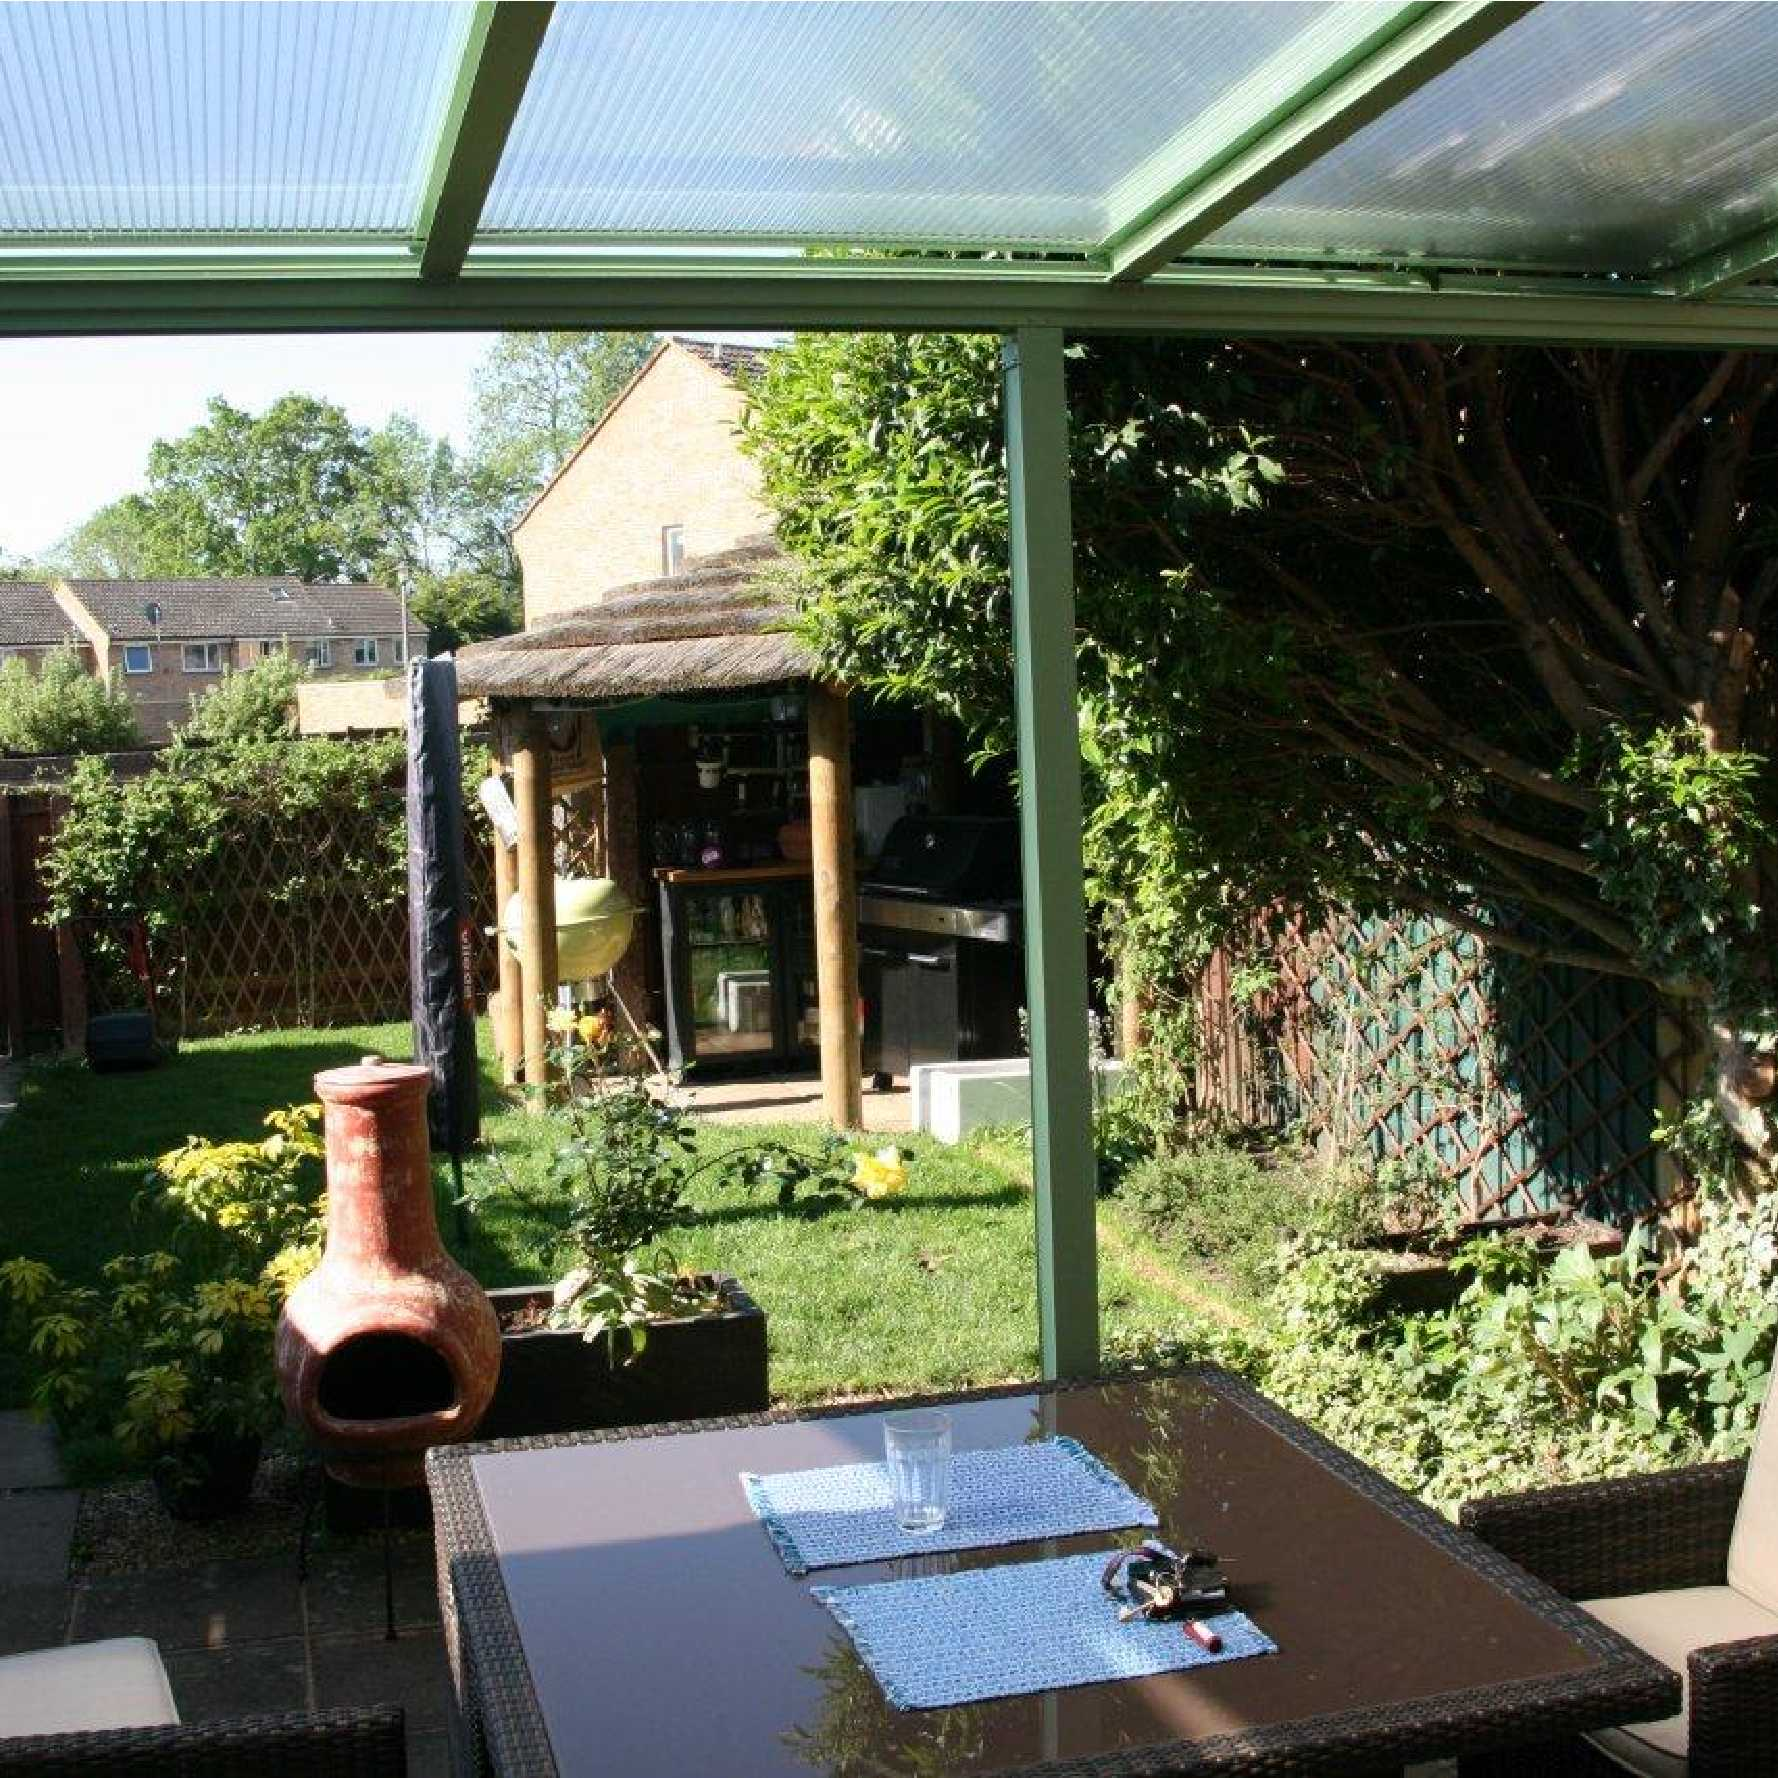 Affordable Omega Smart Lean-To Canopy with 16mm Polycarbonate Glazing - 2.8m (W) x 3.5m (P), (2) Supporting Posts